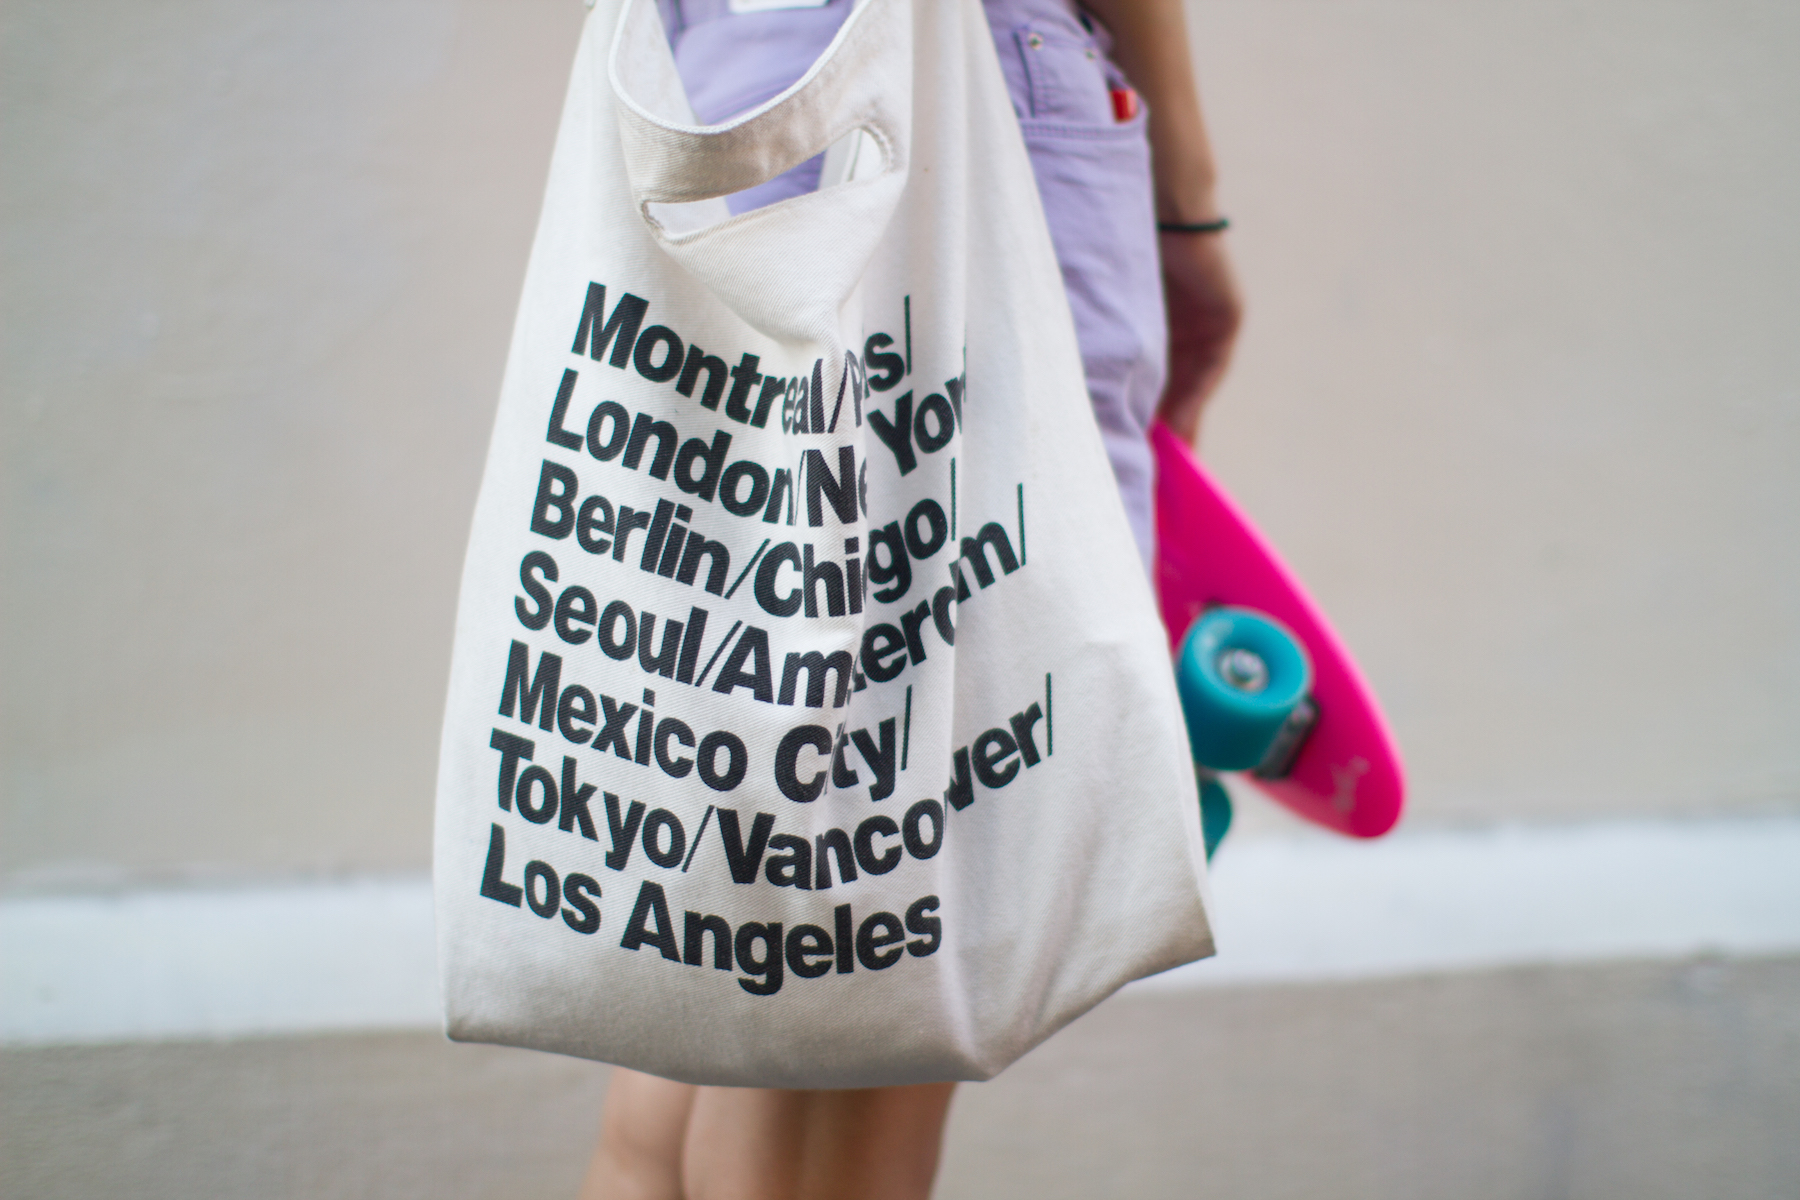 A person carrying a white American Apparel tote bag and skateboard.